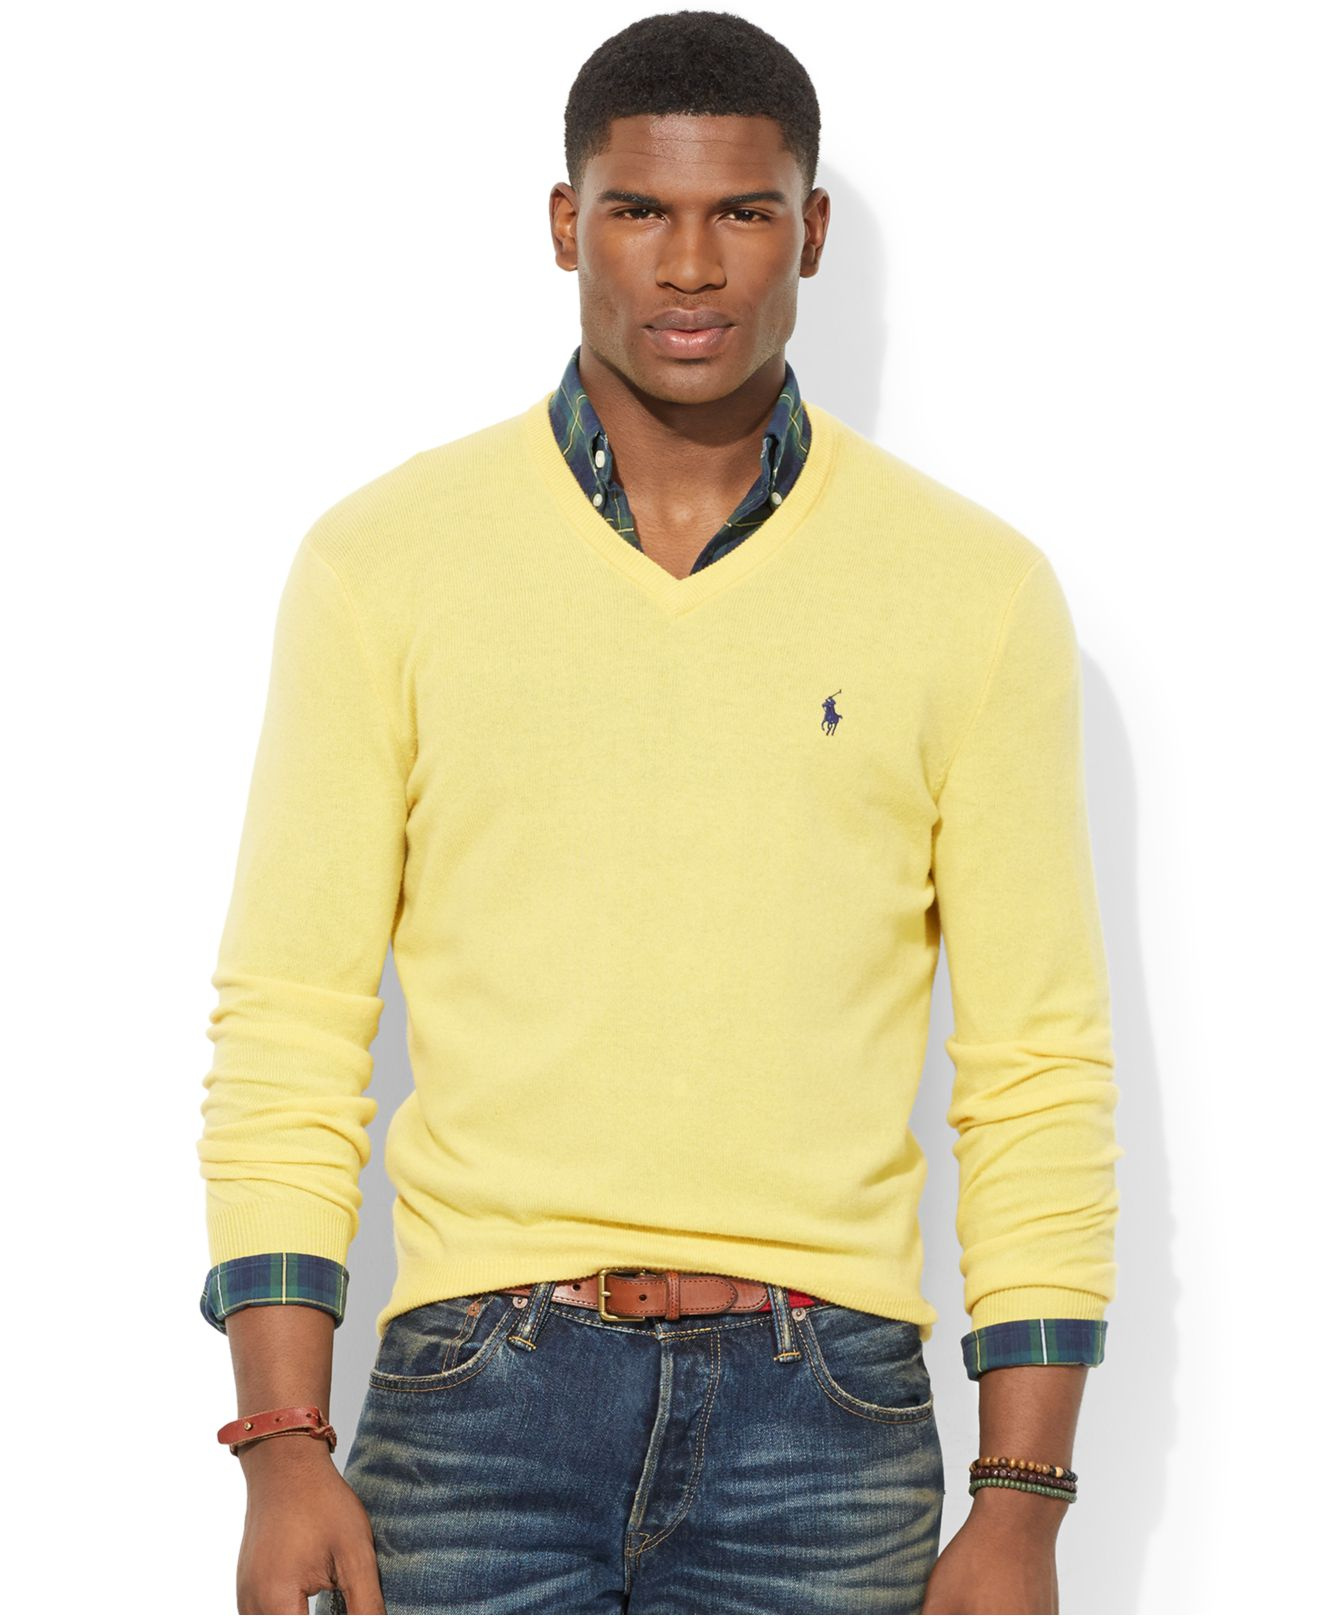 5ddf12243 Polo Ralph Lauren Loryelle Merino Wool V-Neck Sweater in Yellow for ...